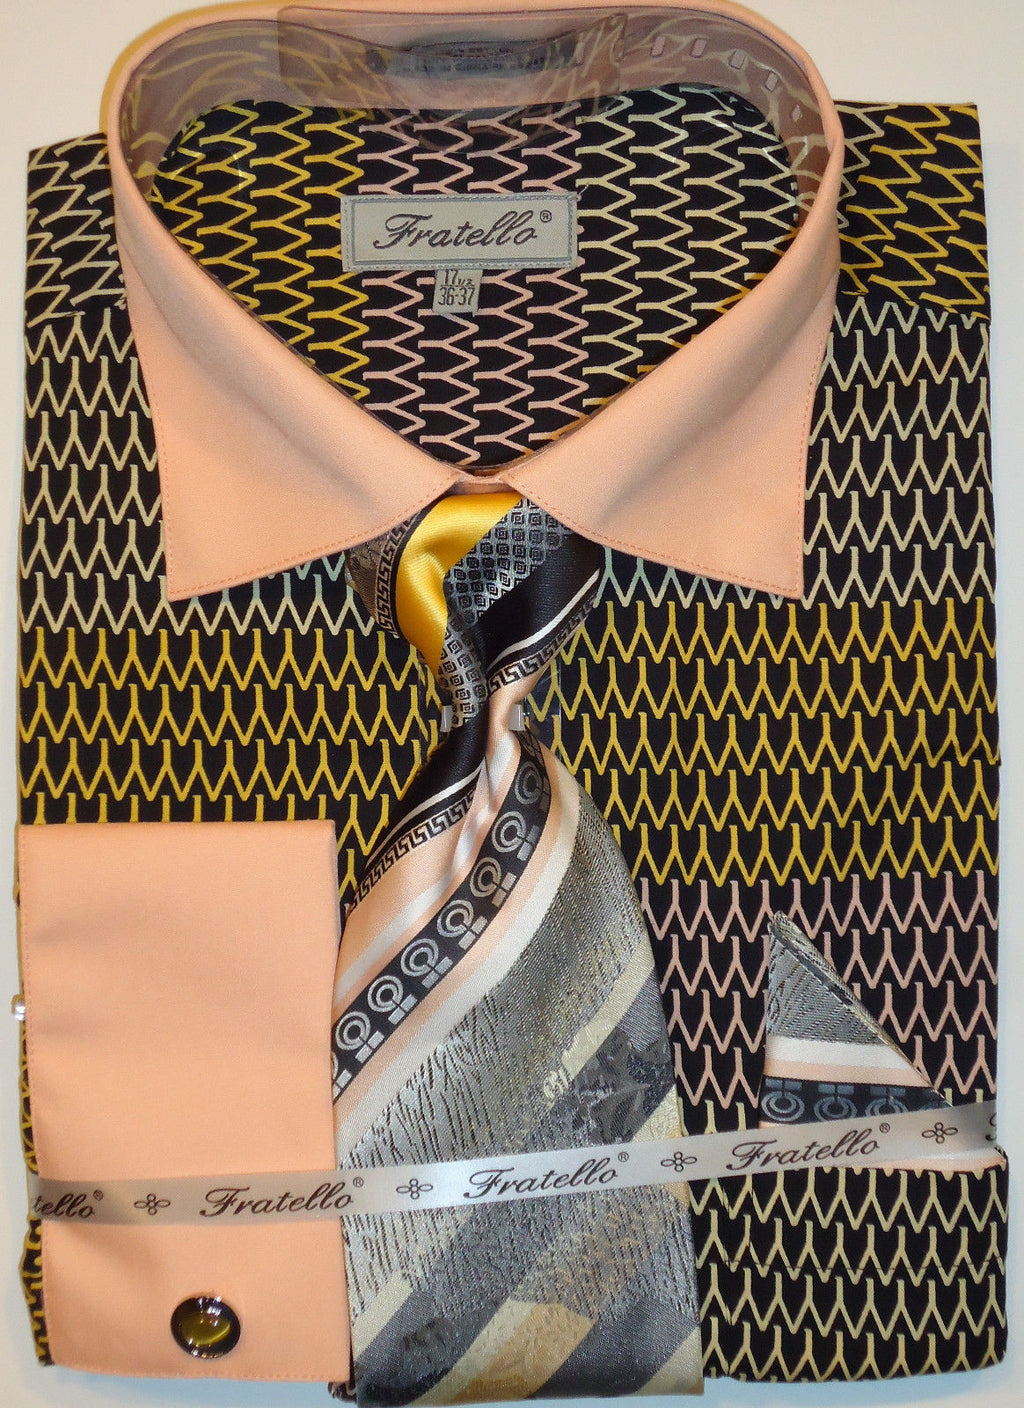 Mens Graphic Black Gold Peach Dress Shirt & Tie w/ Double Cuffs Fratello FRV4127 - Nader Fashion Las Vegas